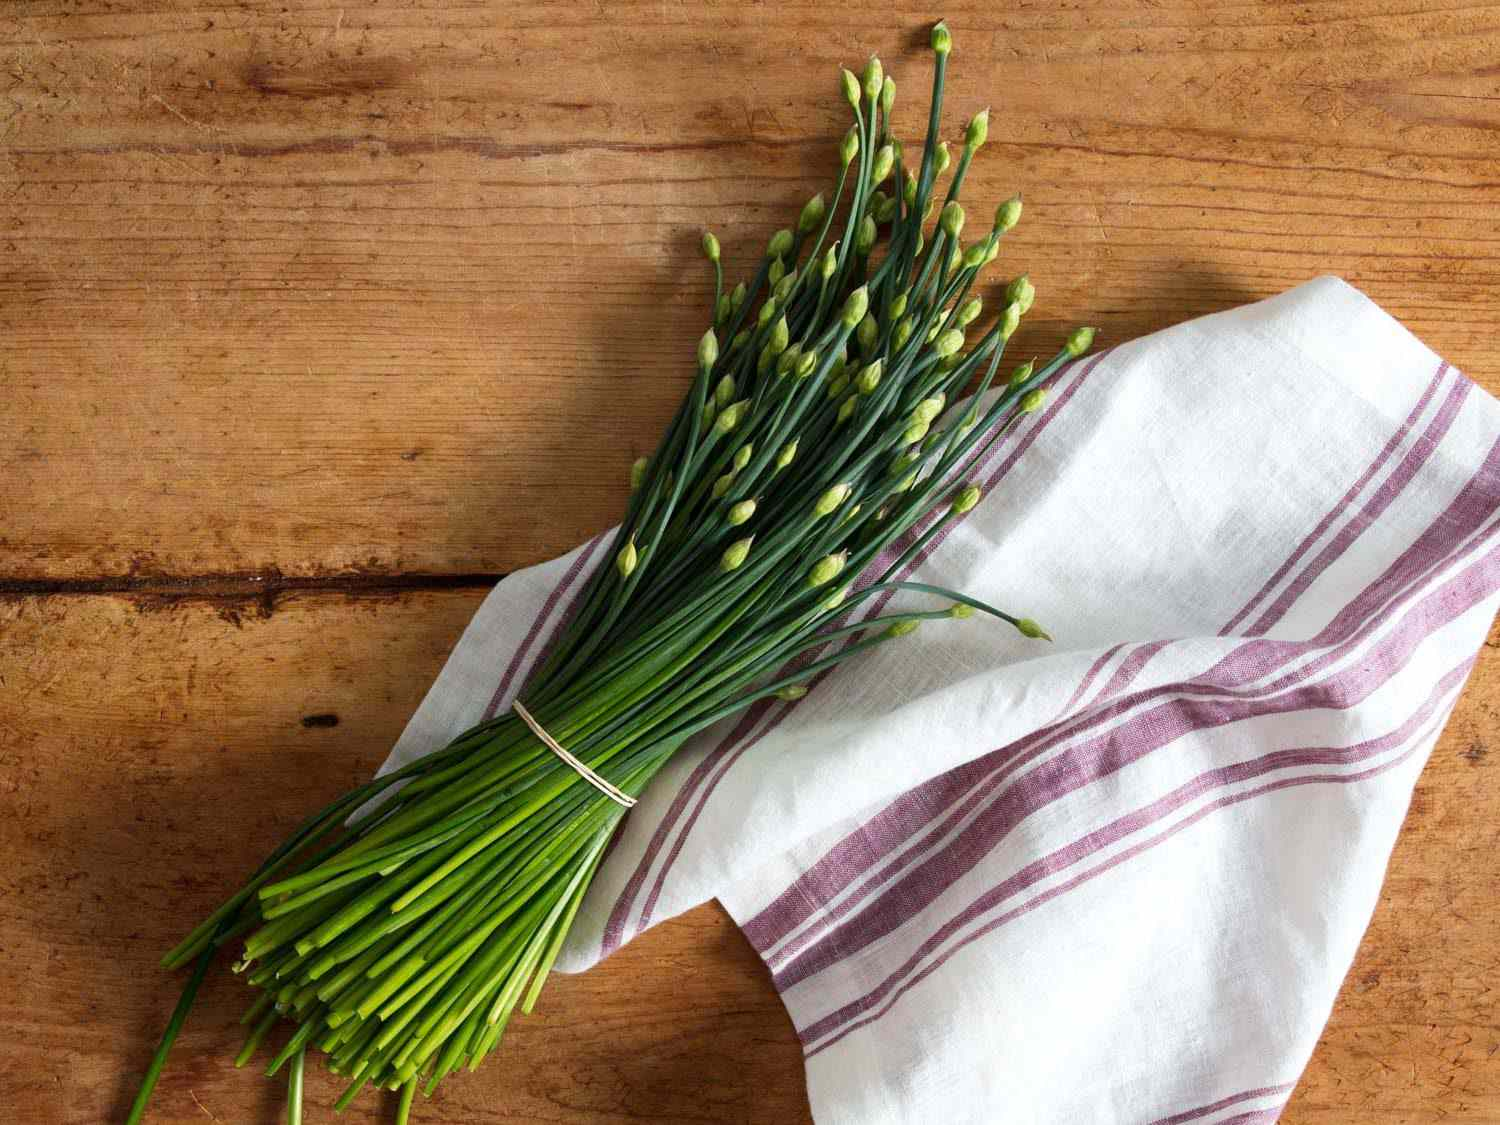 Bundle of flowering garlic chives on a table.